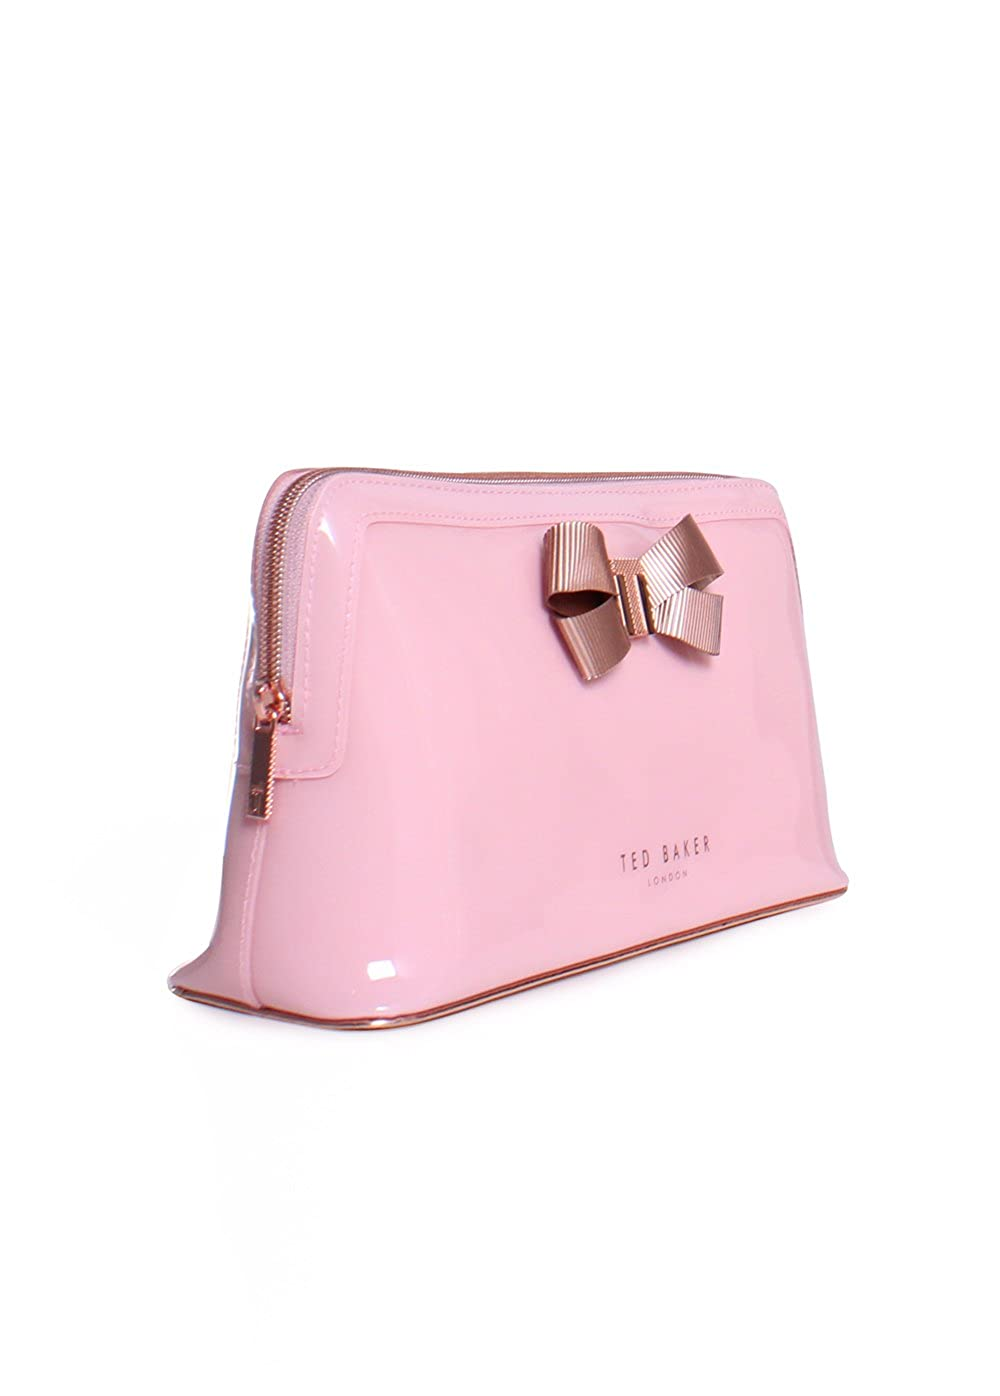 c3e7647279 Ted Baker Women's Libbert Pale Pink One Size: Amazon.co.uk: Clothing